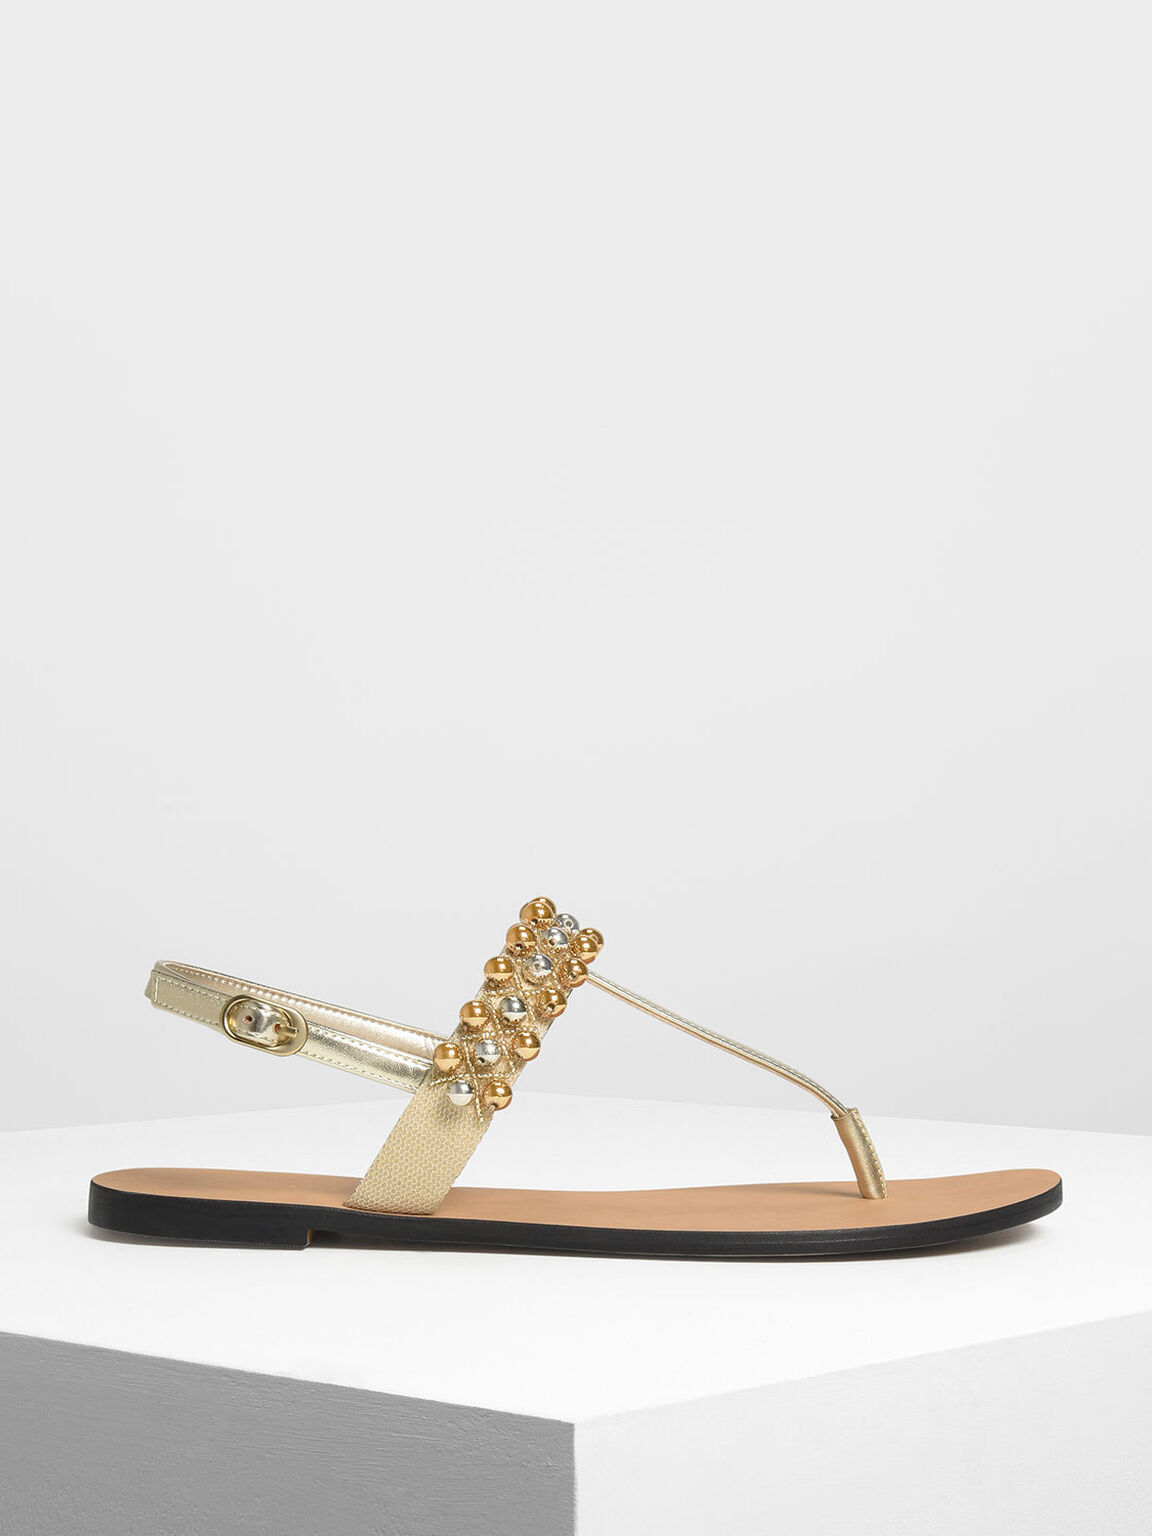 Embellished Thong Sandals, Gold, hi-res